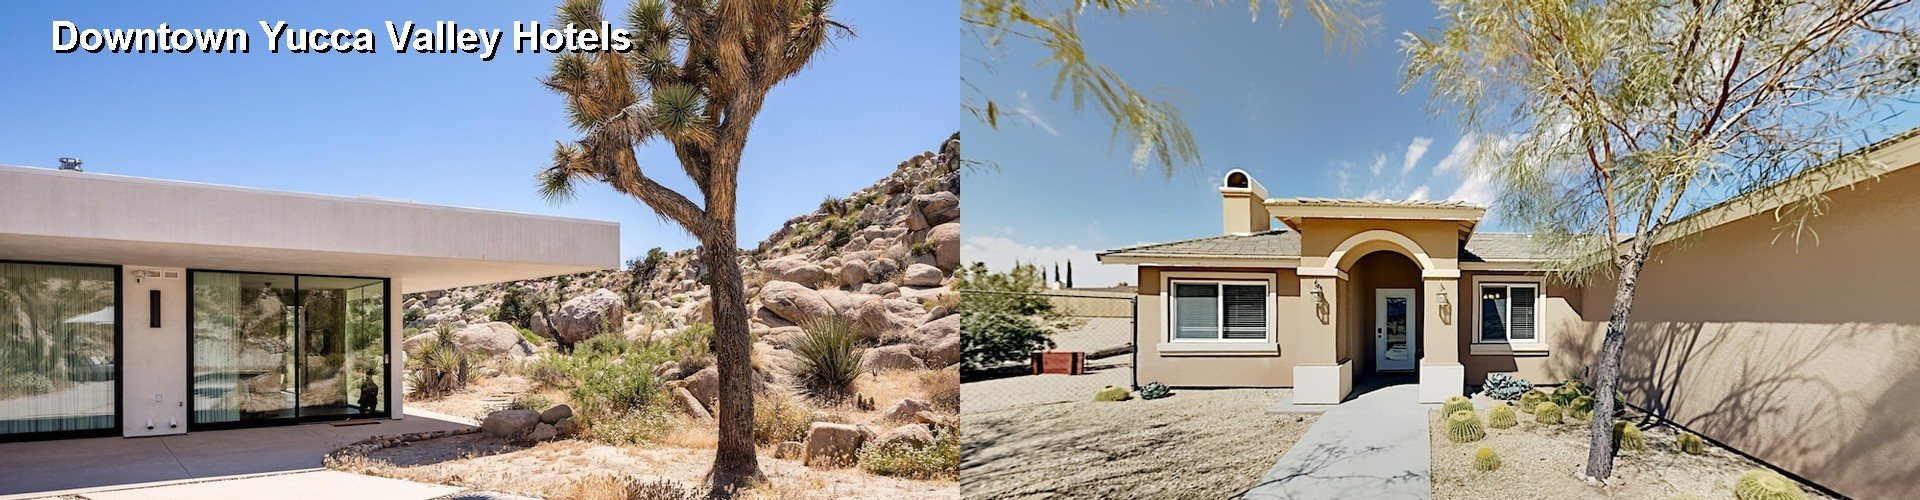 5 Best Hotels Near Downtown Yucca Valley